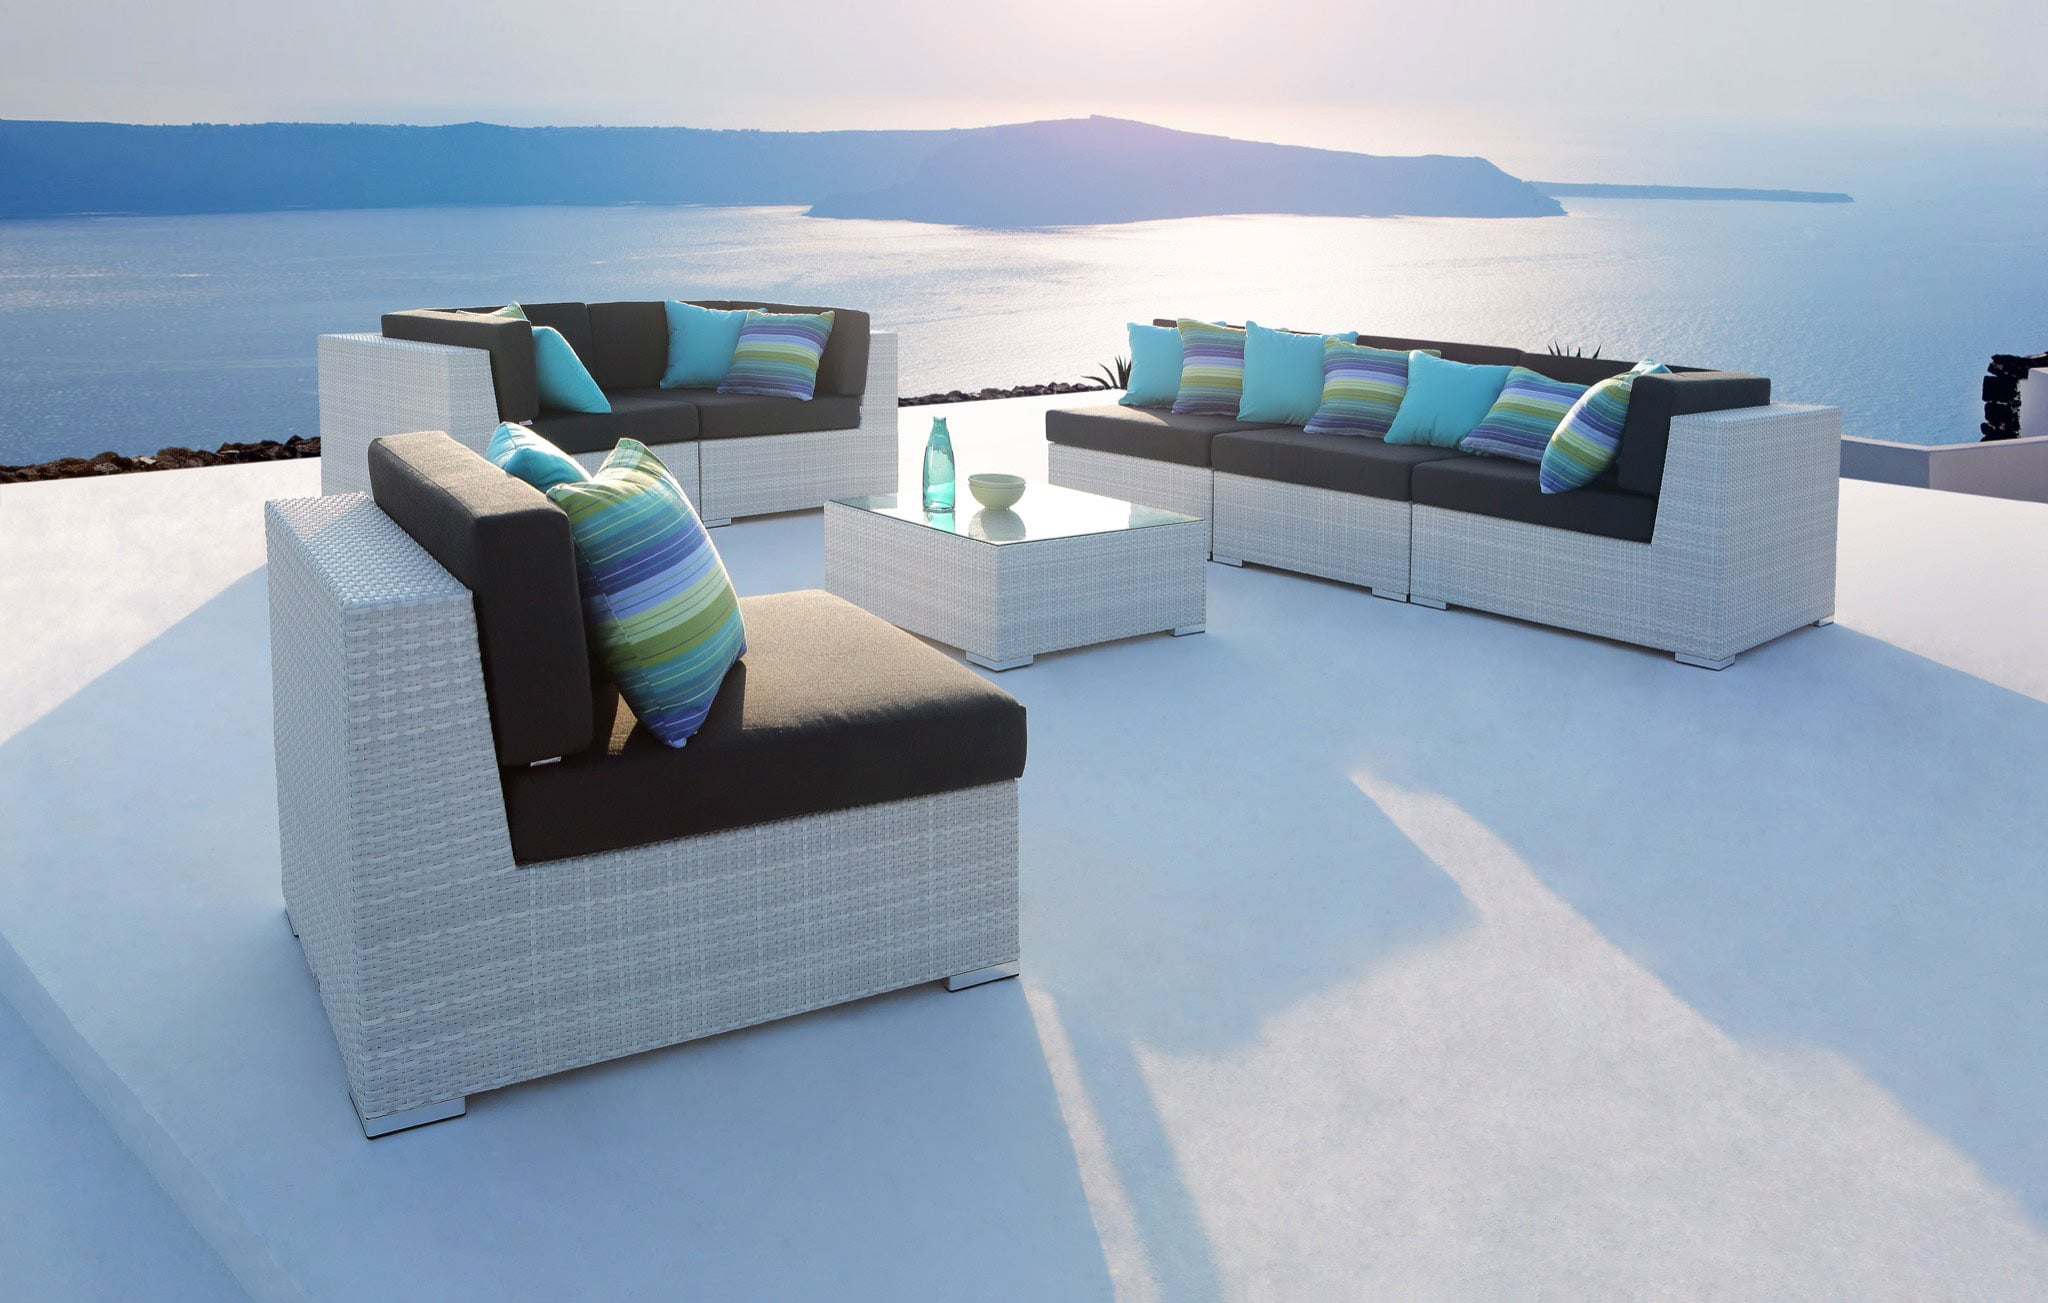 OceanWeave Introduces Alps Collection For New Zealand Summer